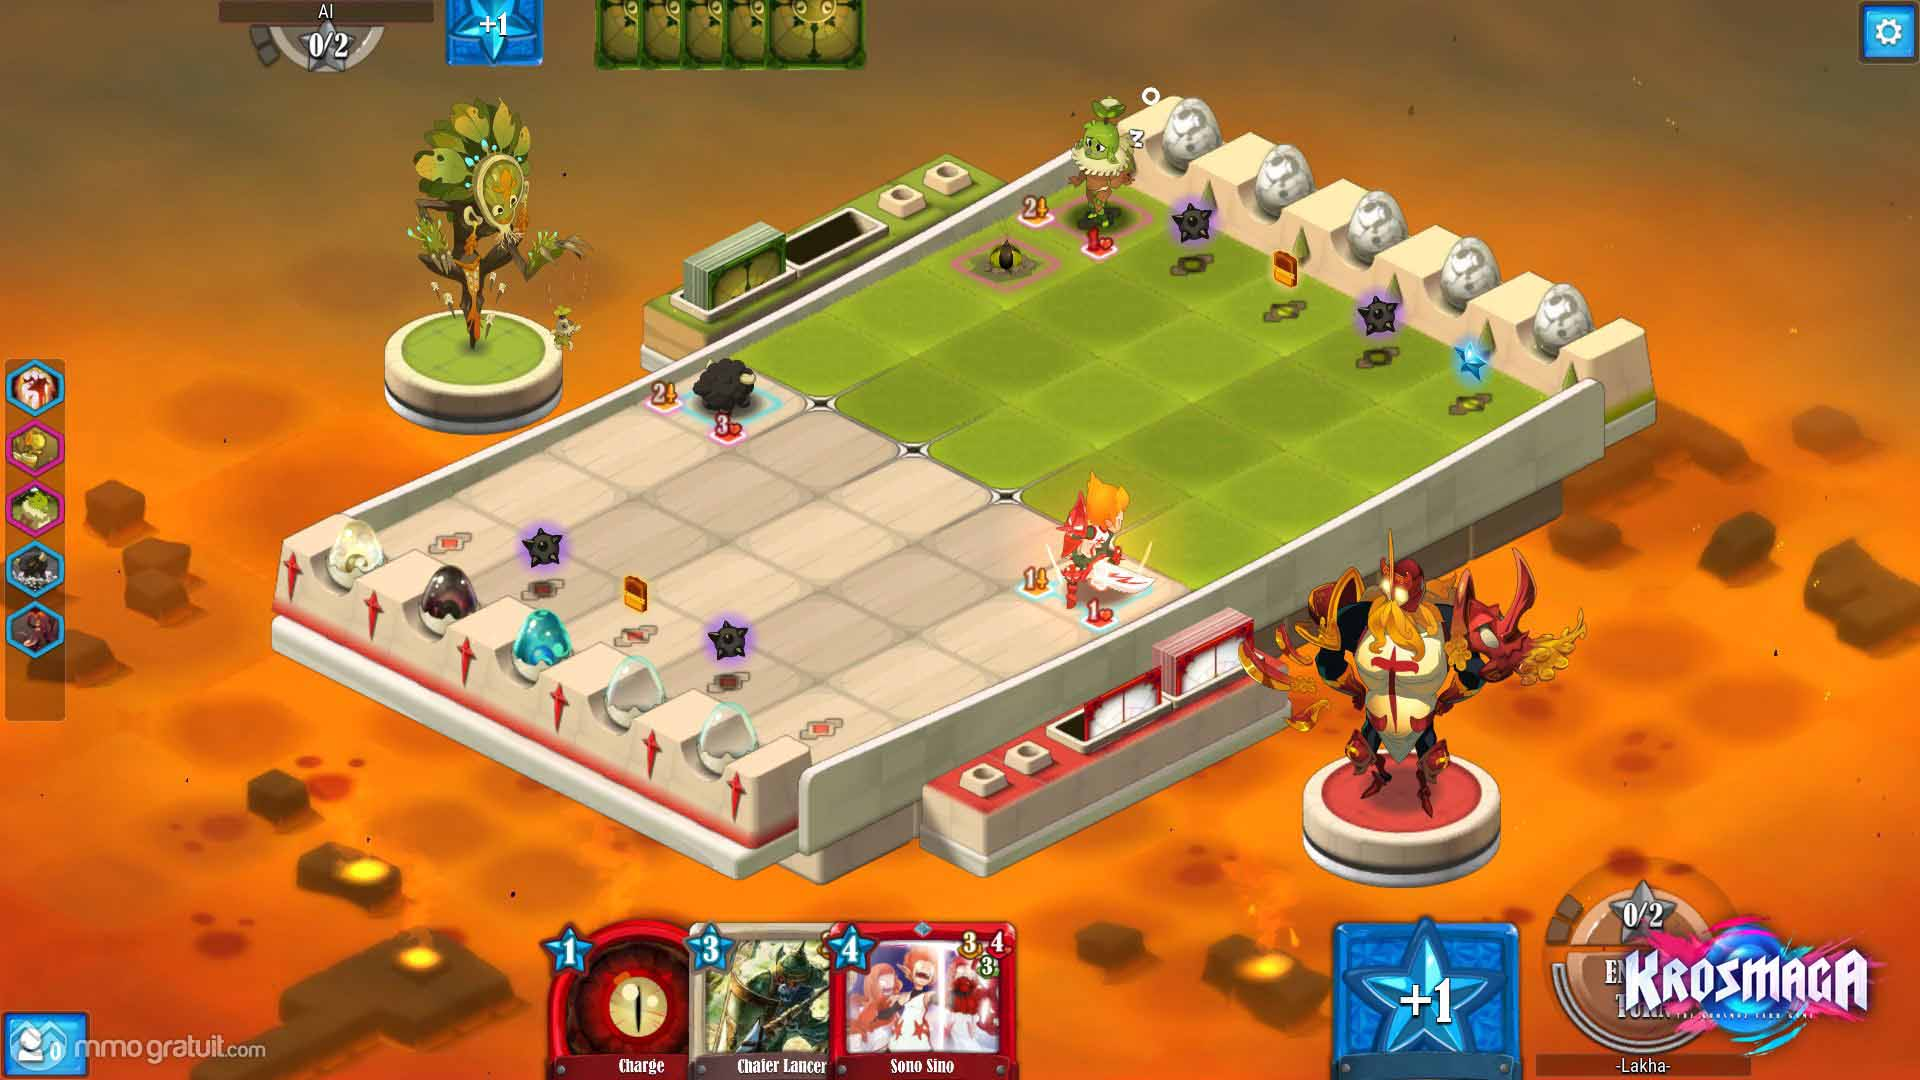 [pécé] Krosmaga Krosmaga-screenshot-5-copia